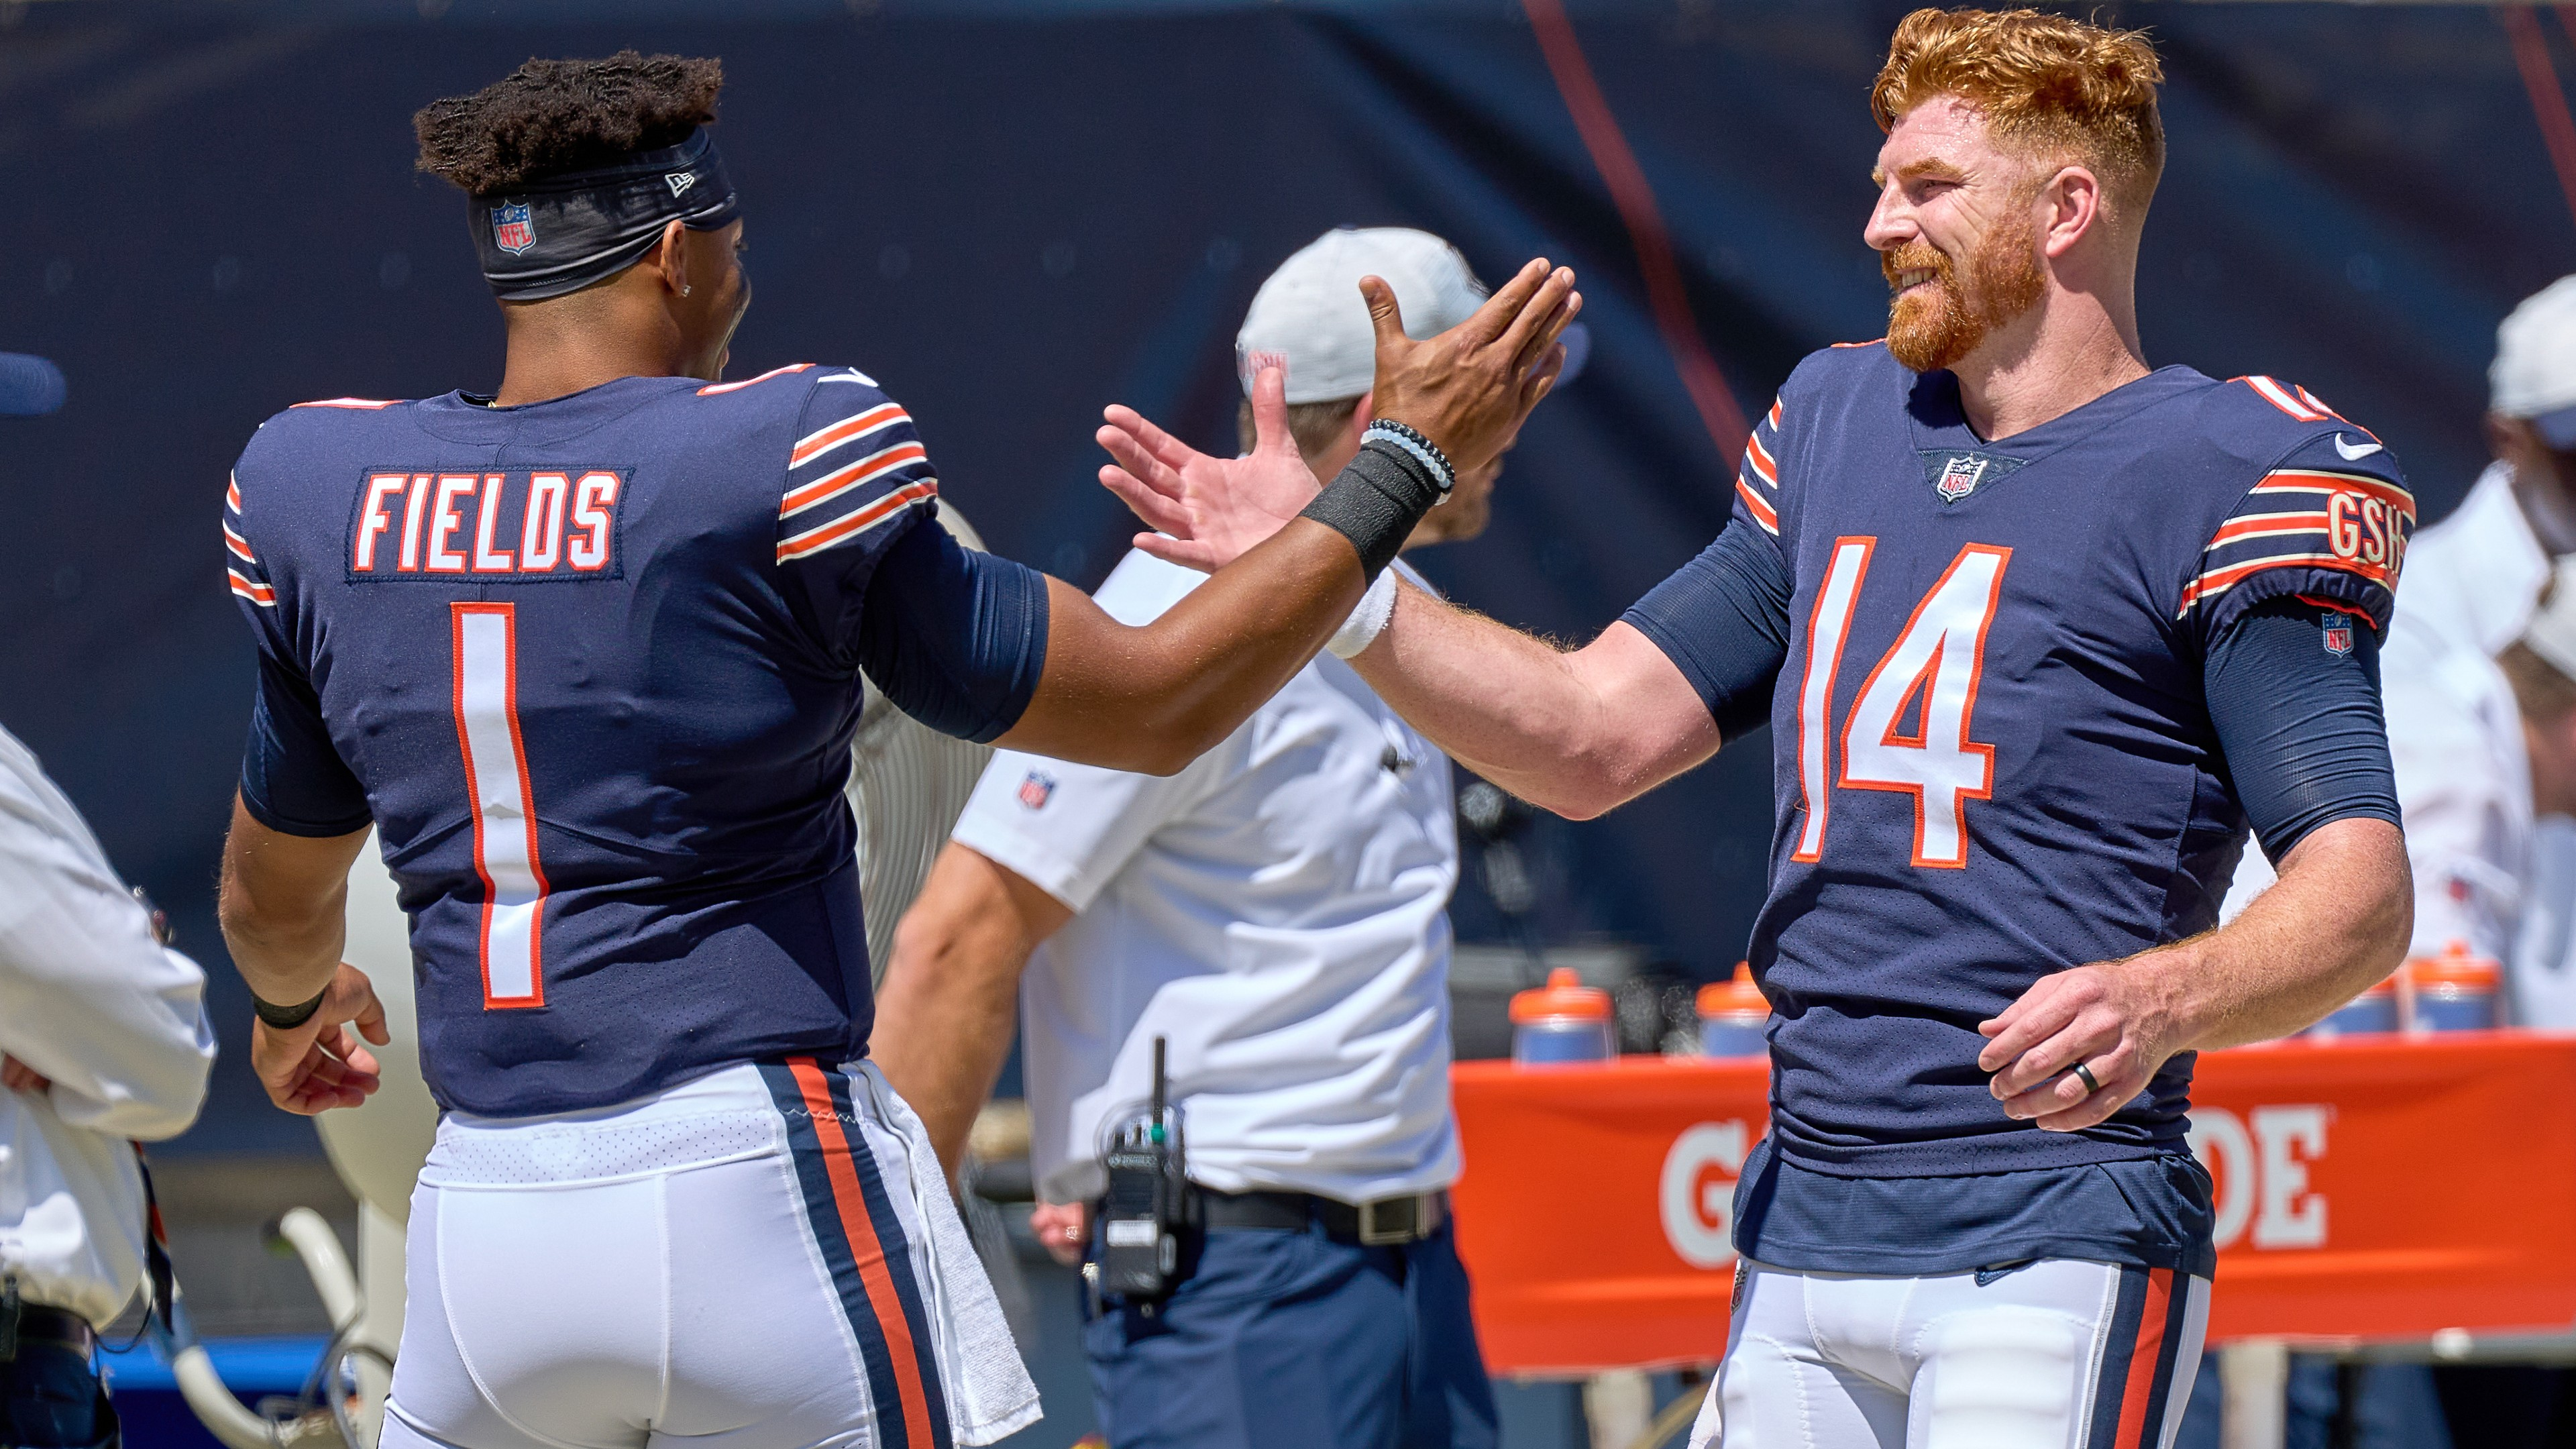 Bears' Justin Fields defends Andy Dalton after fans boo him: 'Andy is a  human being too' | Sporting News